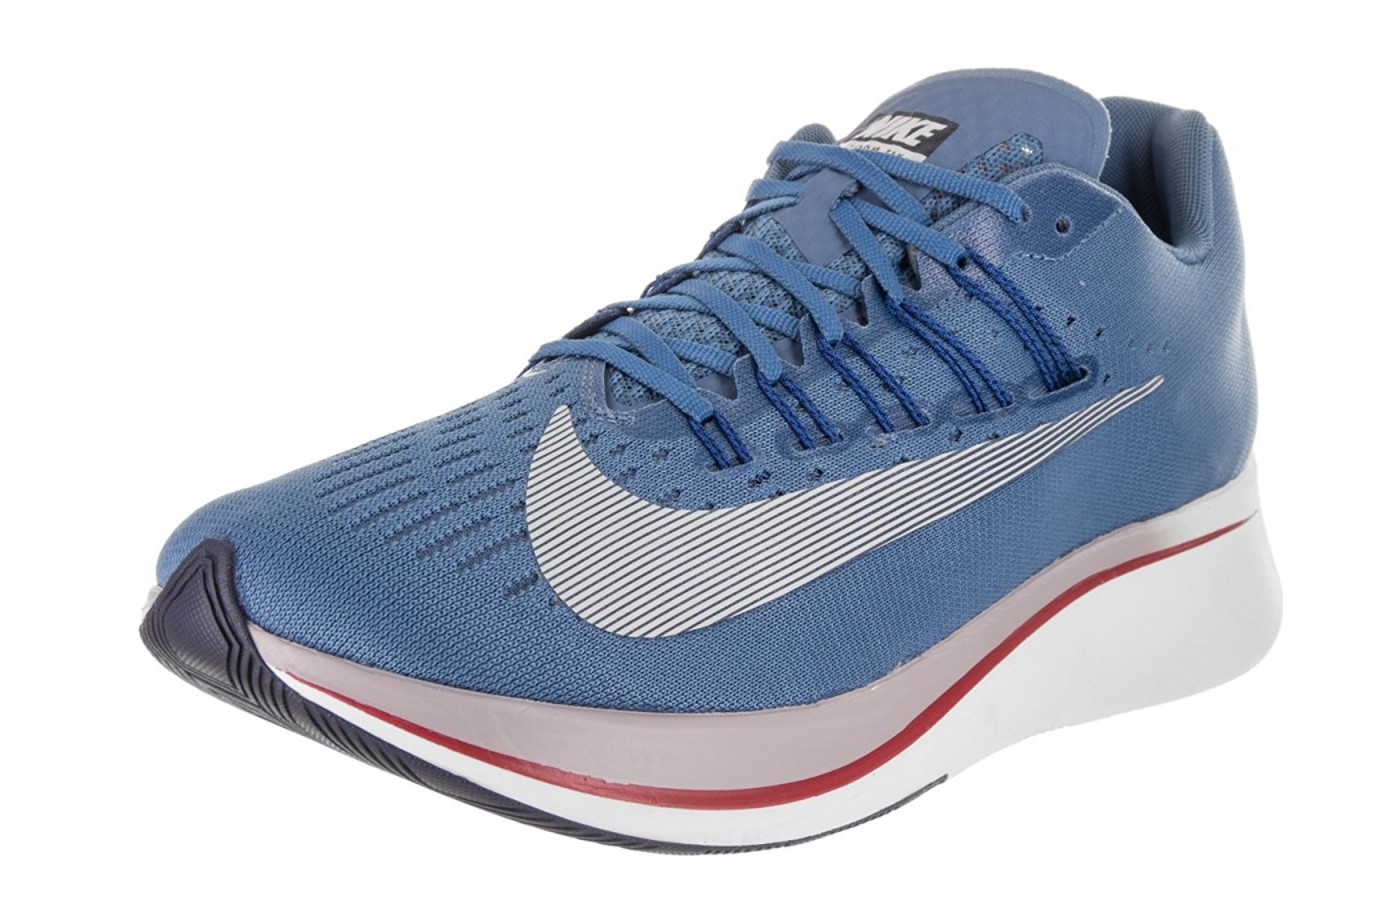 d3250bc4ee5cd Nike Zoom Fly Tested for Performance in 2019